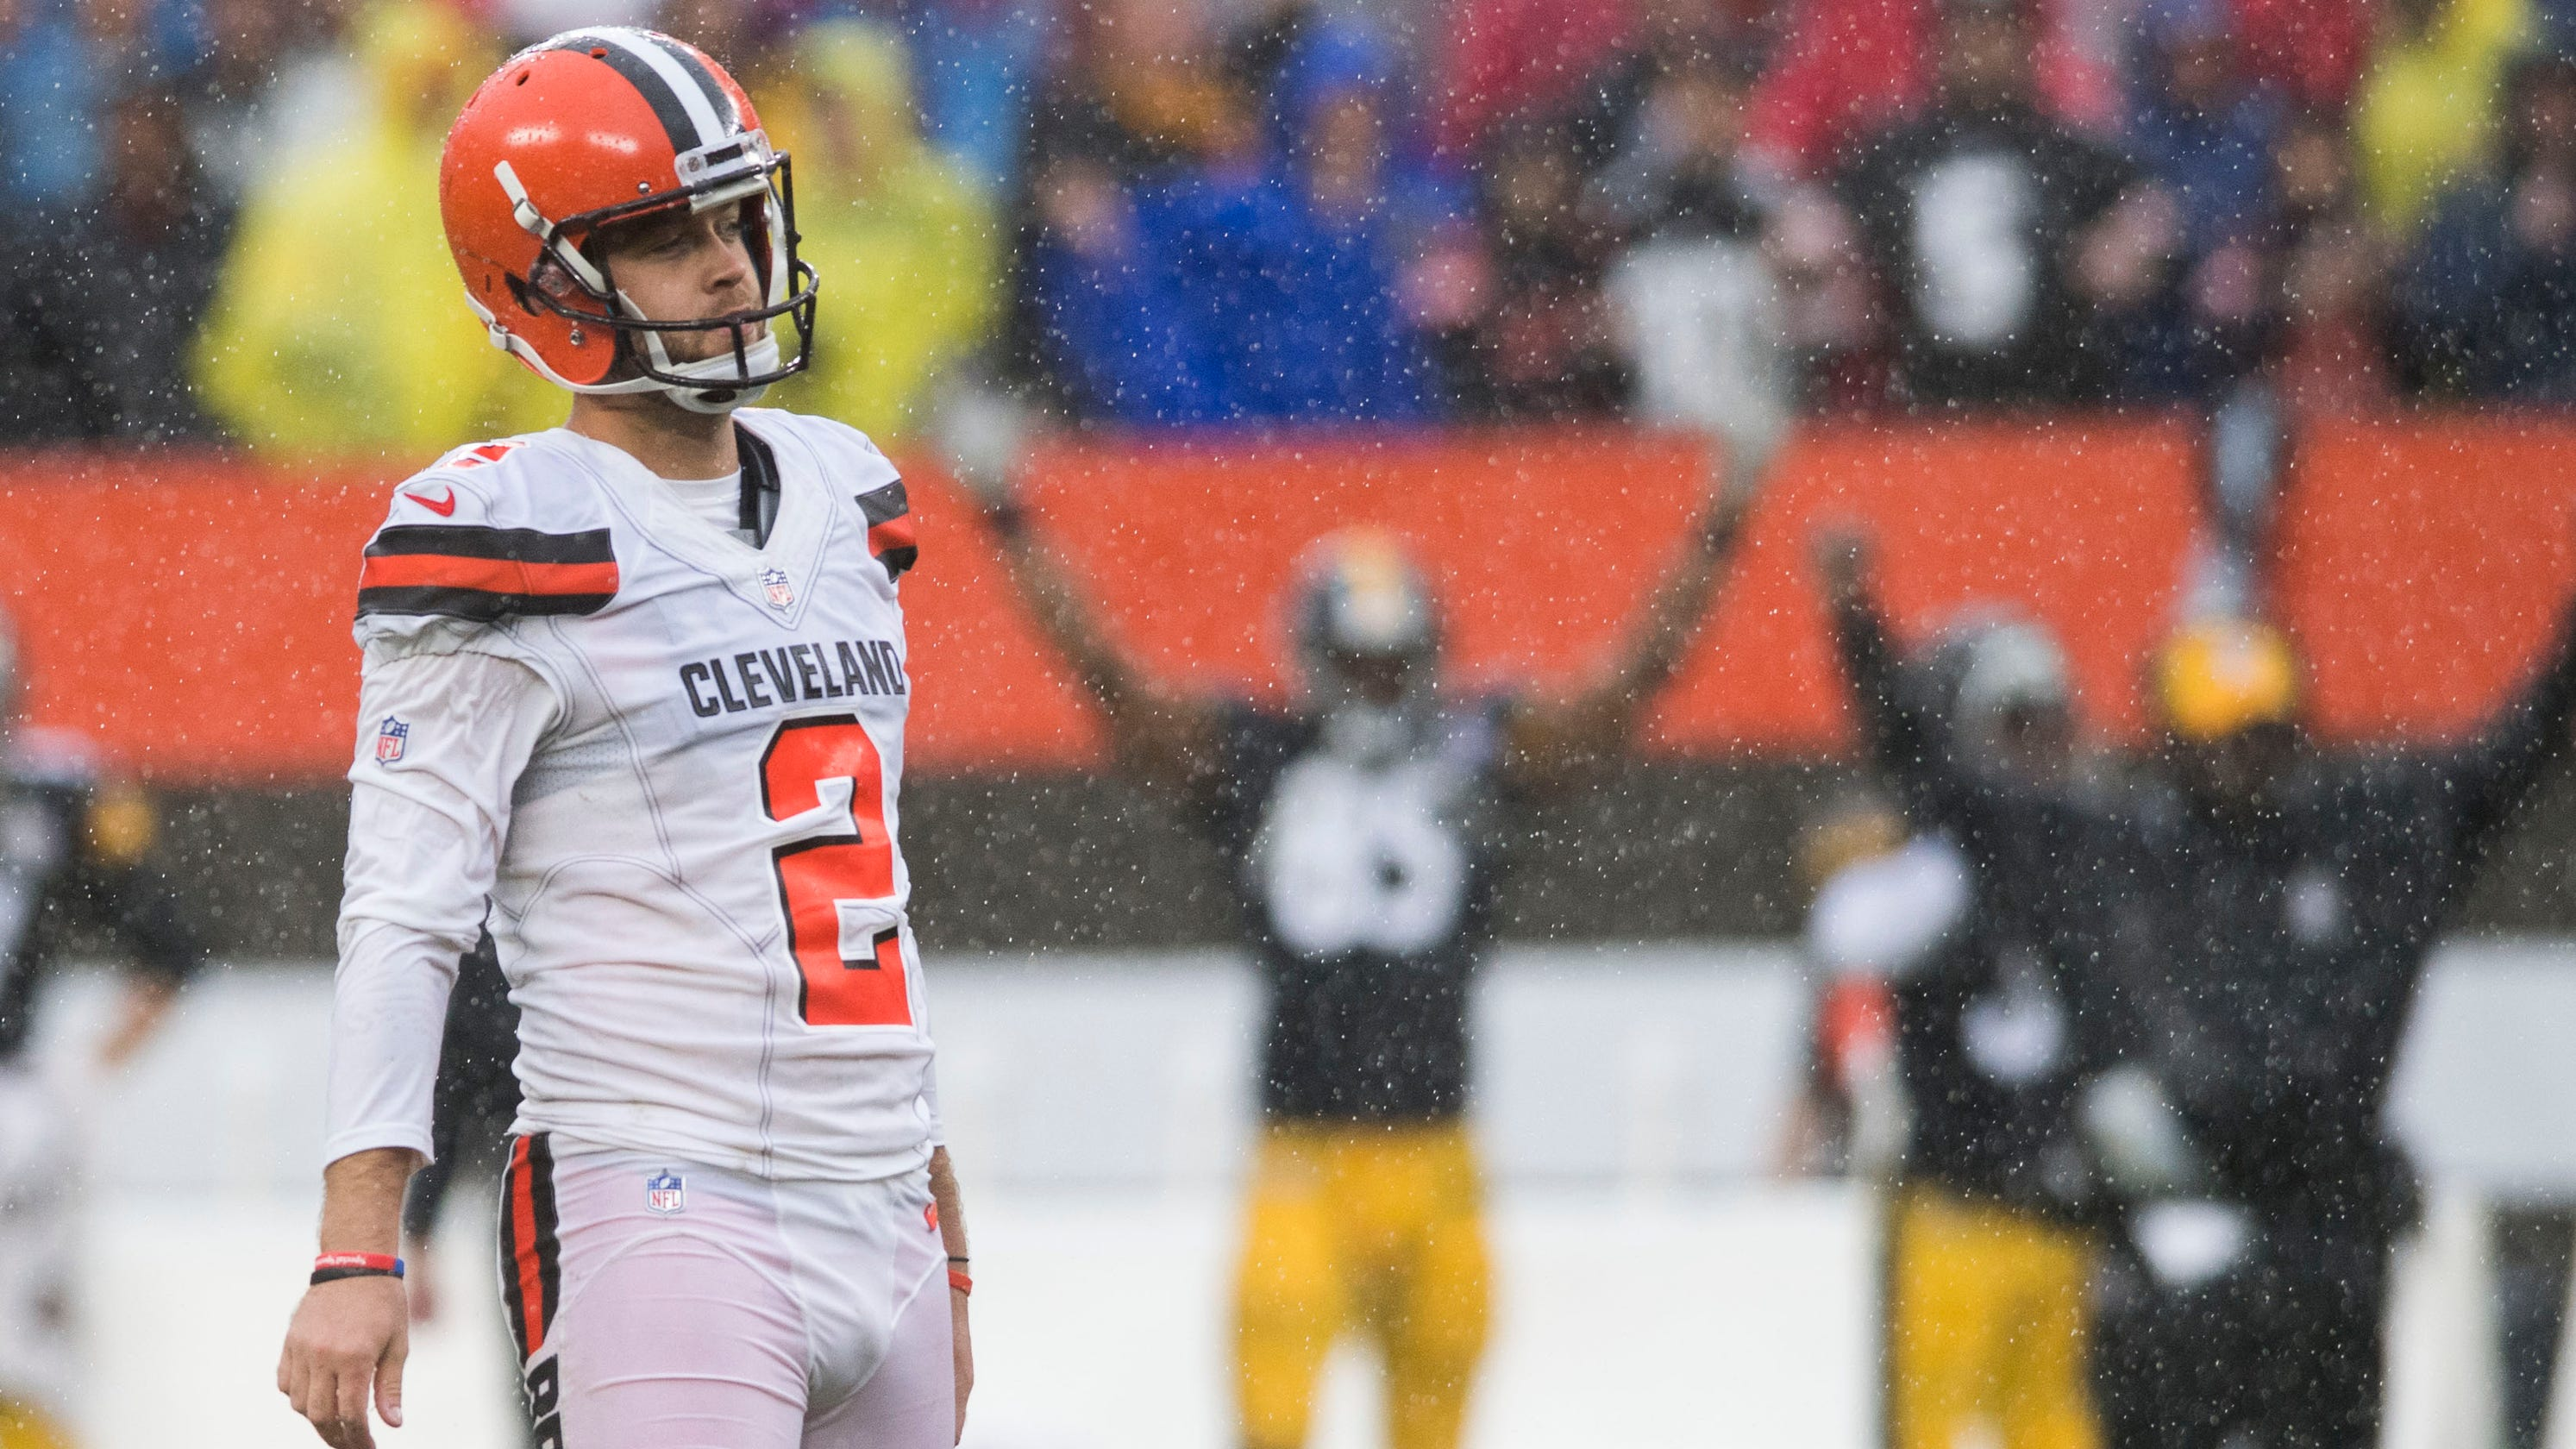 Usatsi Crop Width Height Fit Bounds Browns Wont Count Tie Steelers Win